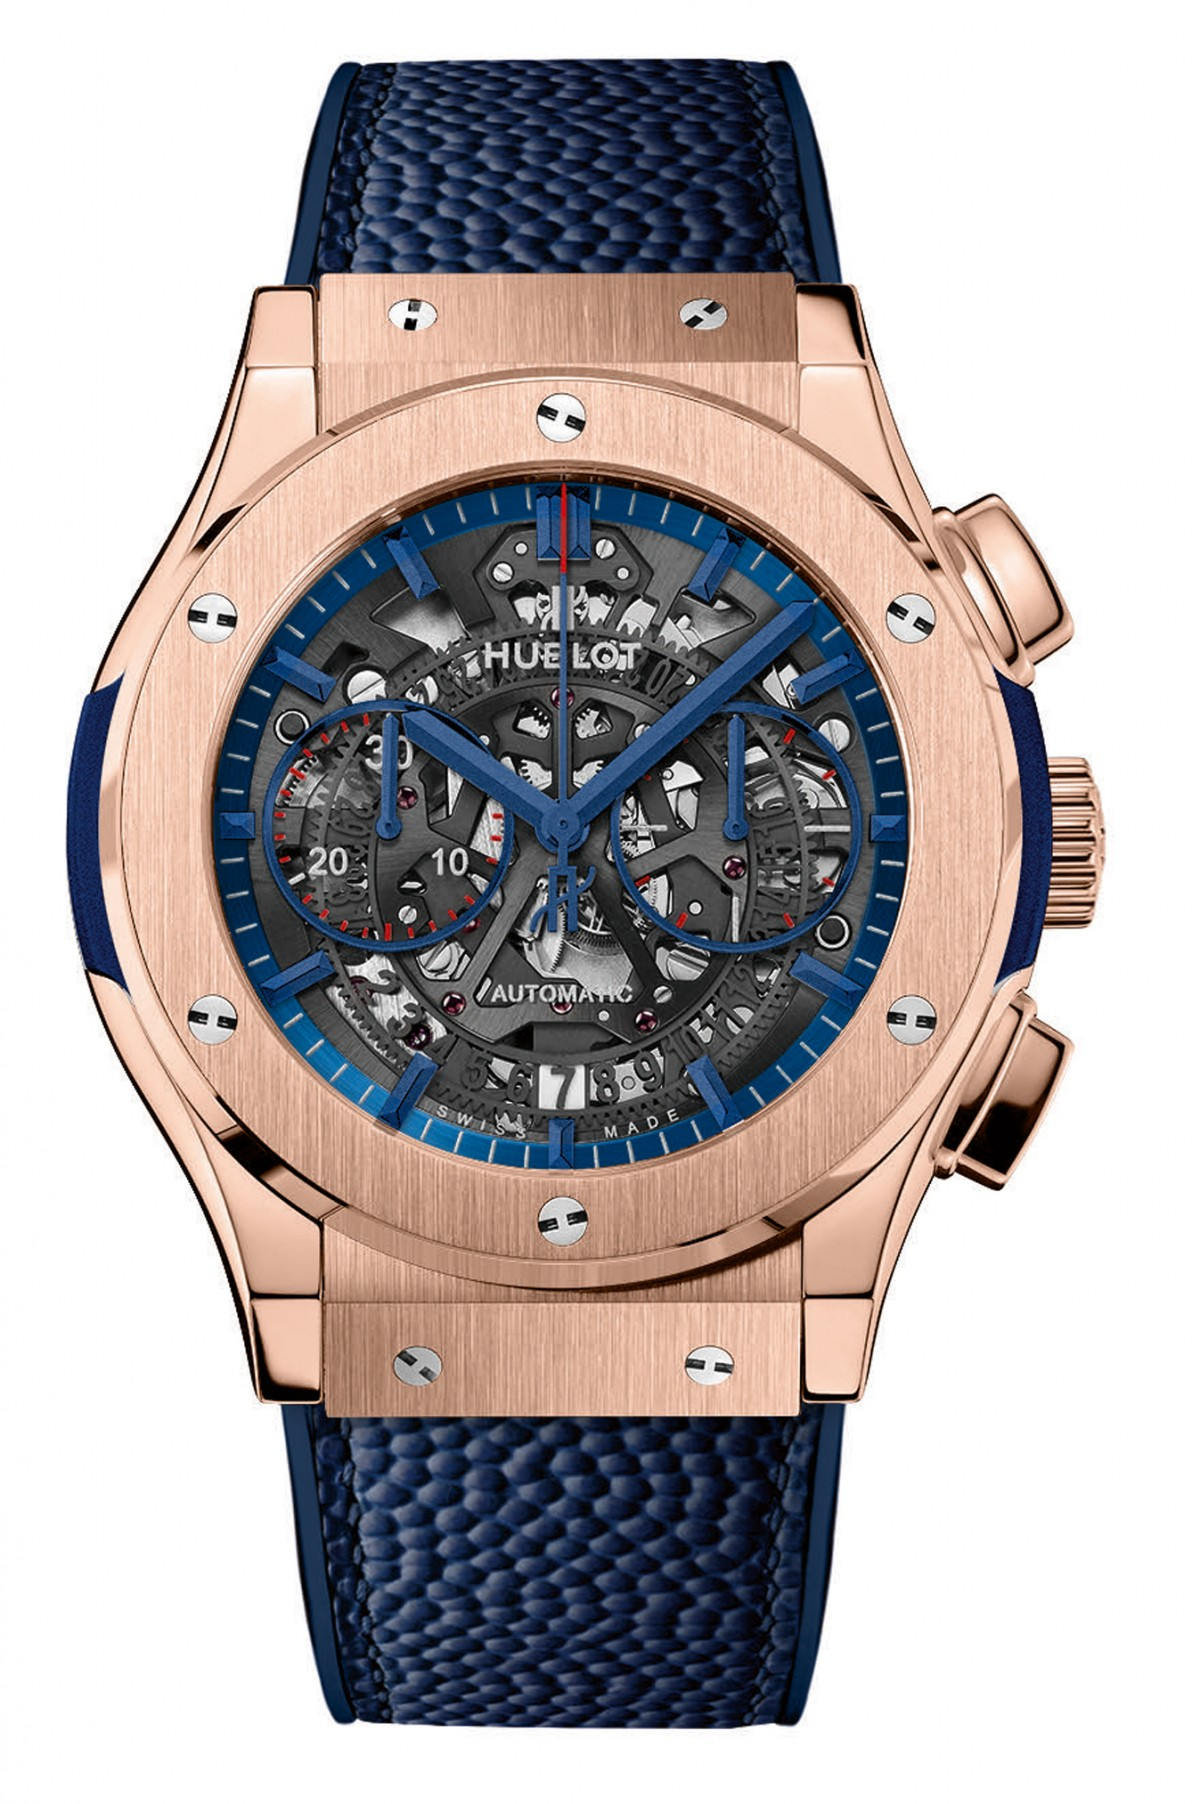 classic-fusion-aerofusion-limited-new-york-edition-watch-hublot-new-york-giants